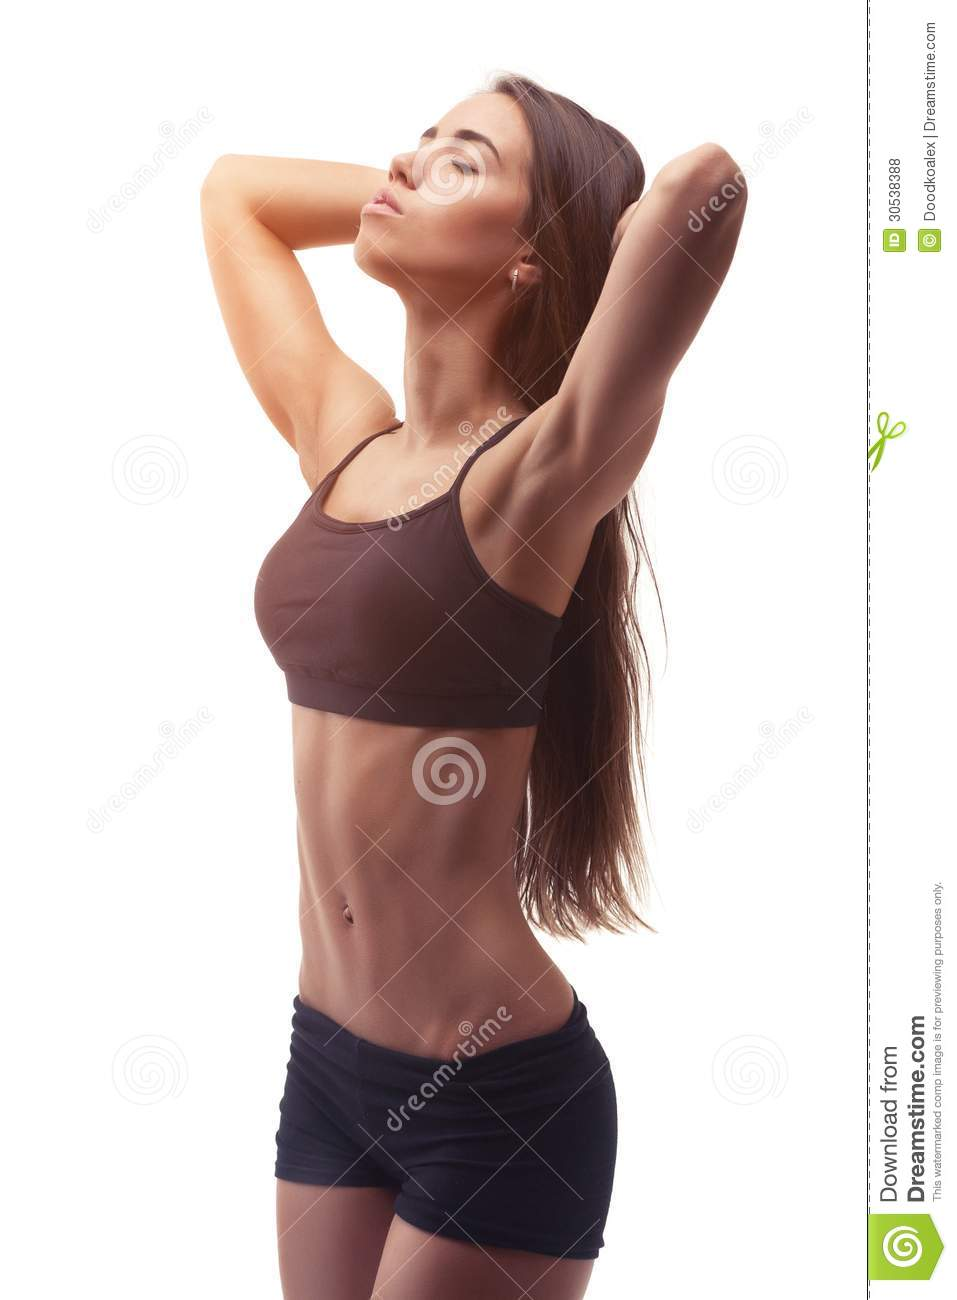 young sport woman with perfect fitness body royalty free stock photos image 30538388. Black Bedroom Furniture Sets. Home Design Ideas